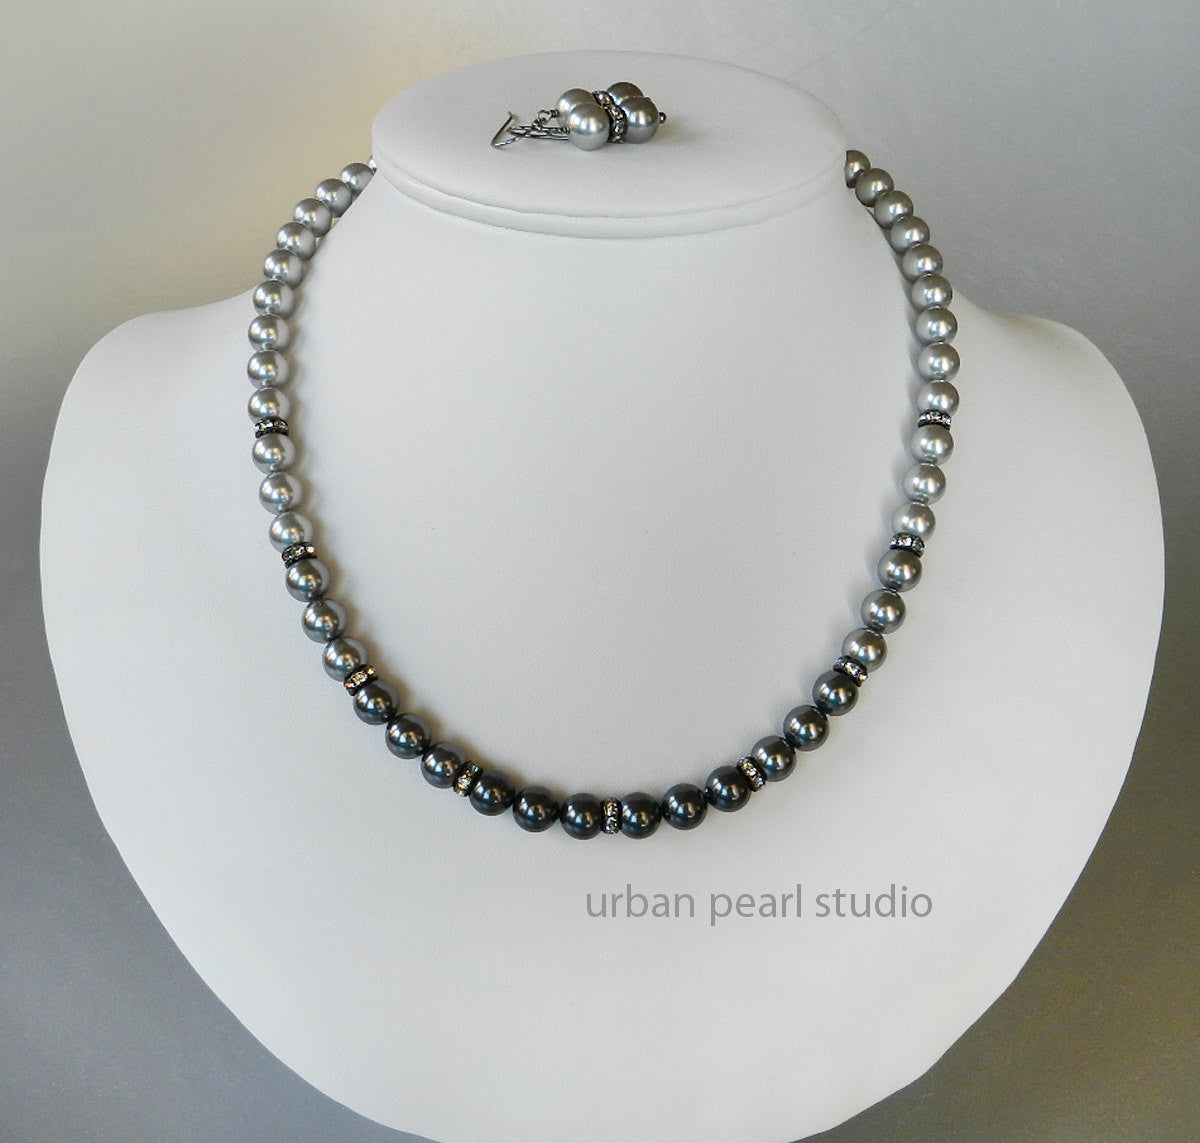 Shades of Gray Ombre Pearl Necklace Earrings Set - 4 Shades of Grey Swarovski Pearls Bridesmaid Jewelry